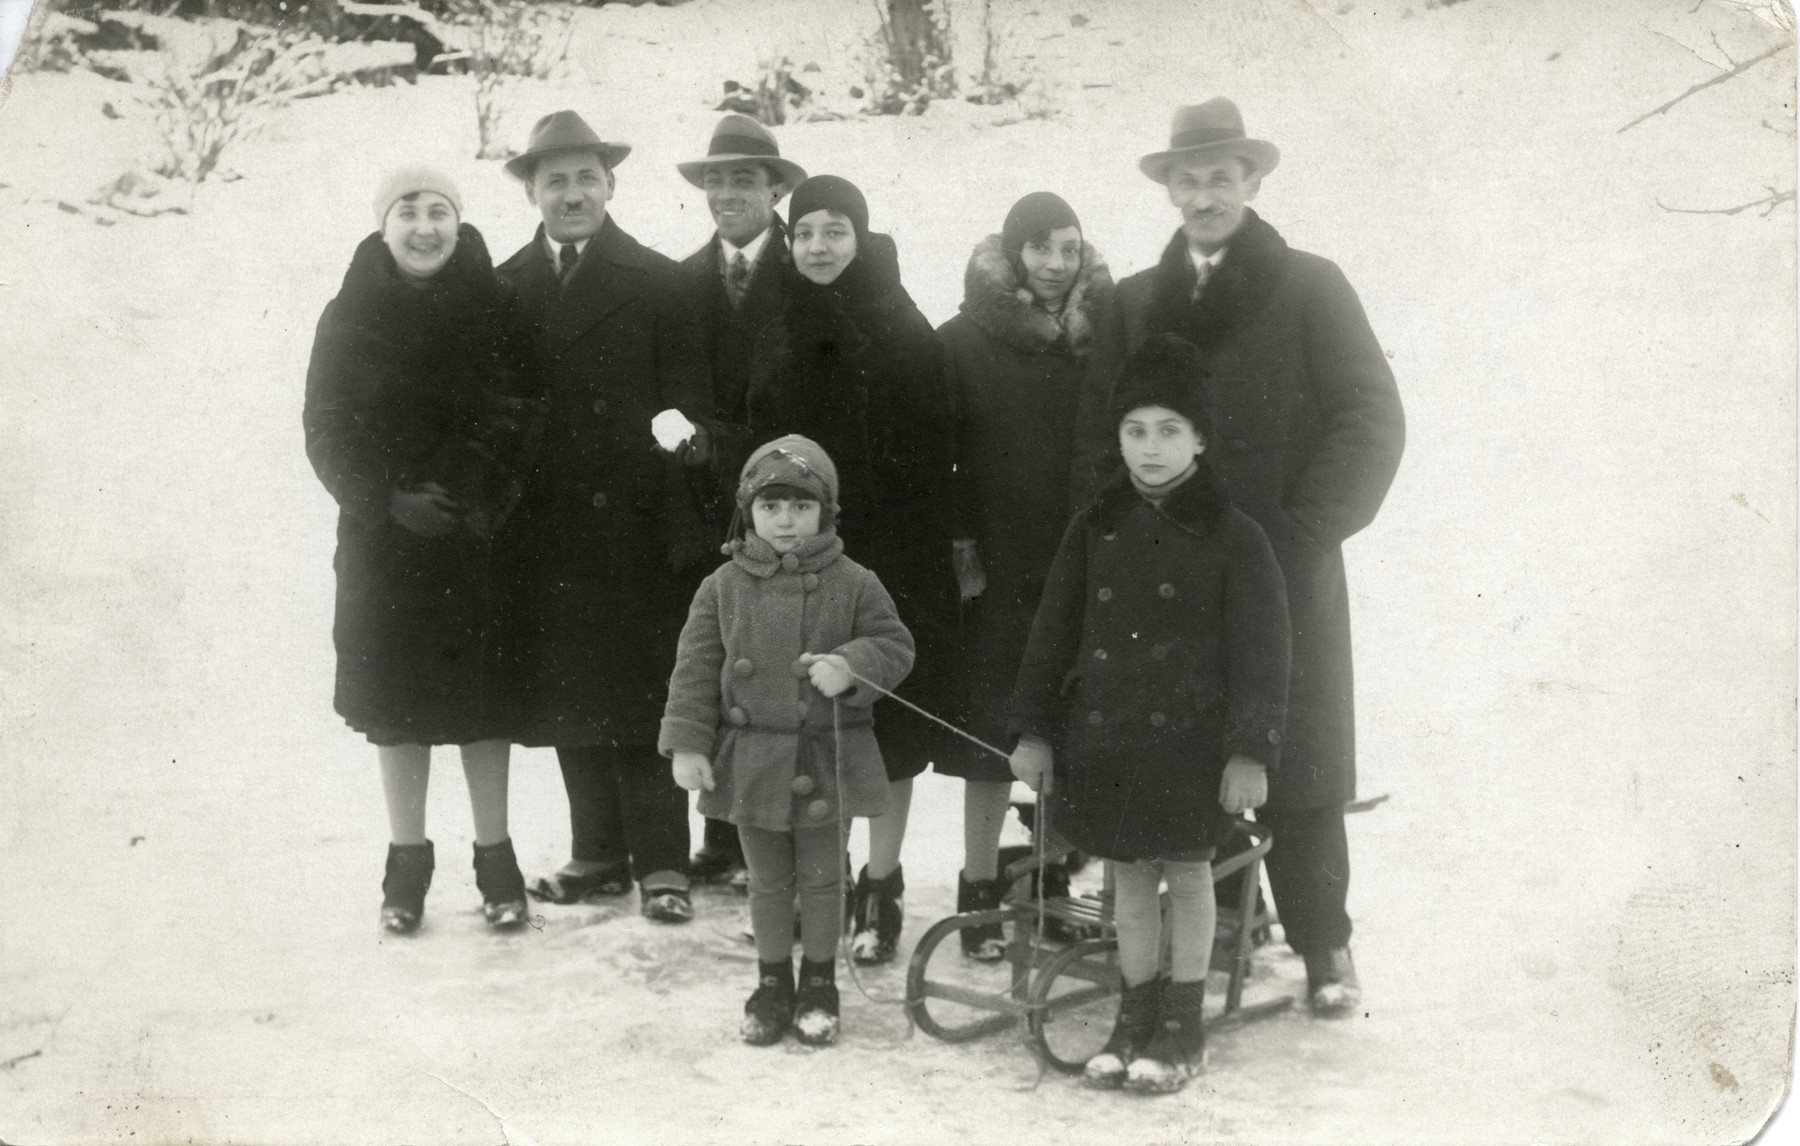 Baruch Hershstyn (2nd from left) poses in the snow with his family and children.